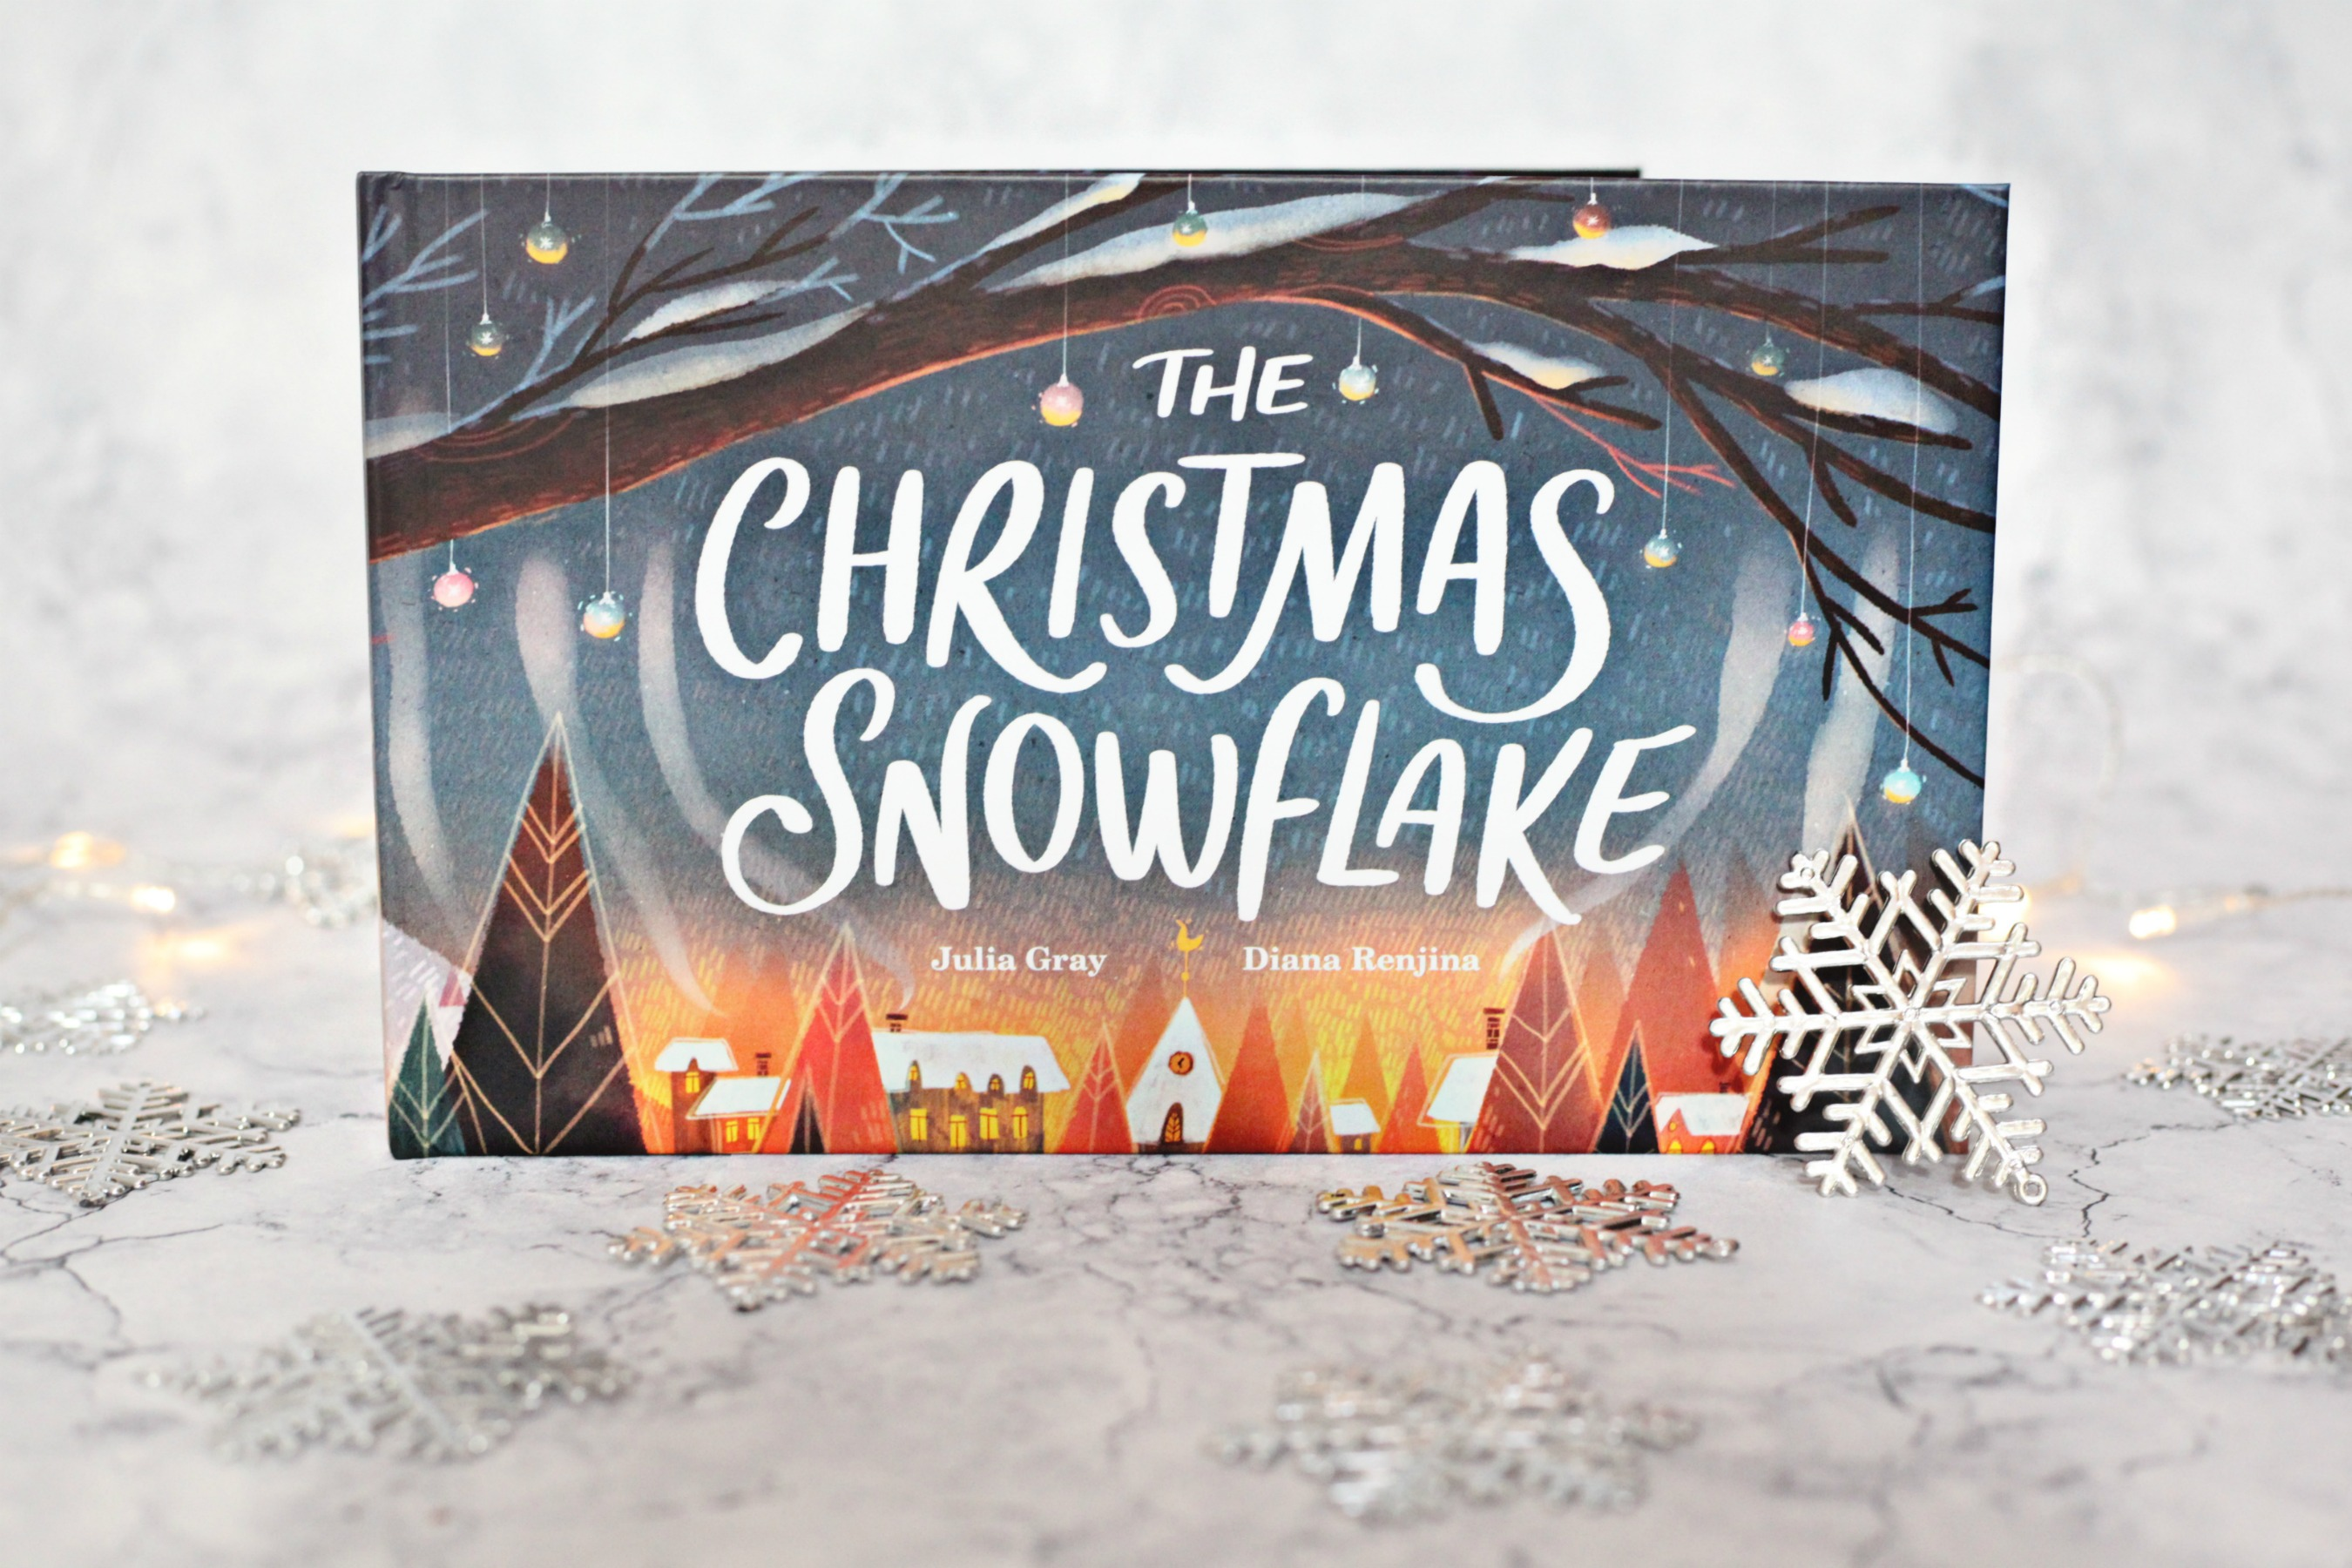 Win your own copy of The Christmas Snowflake